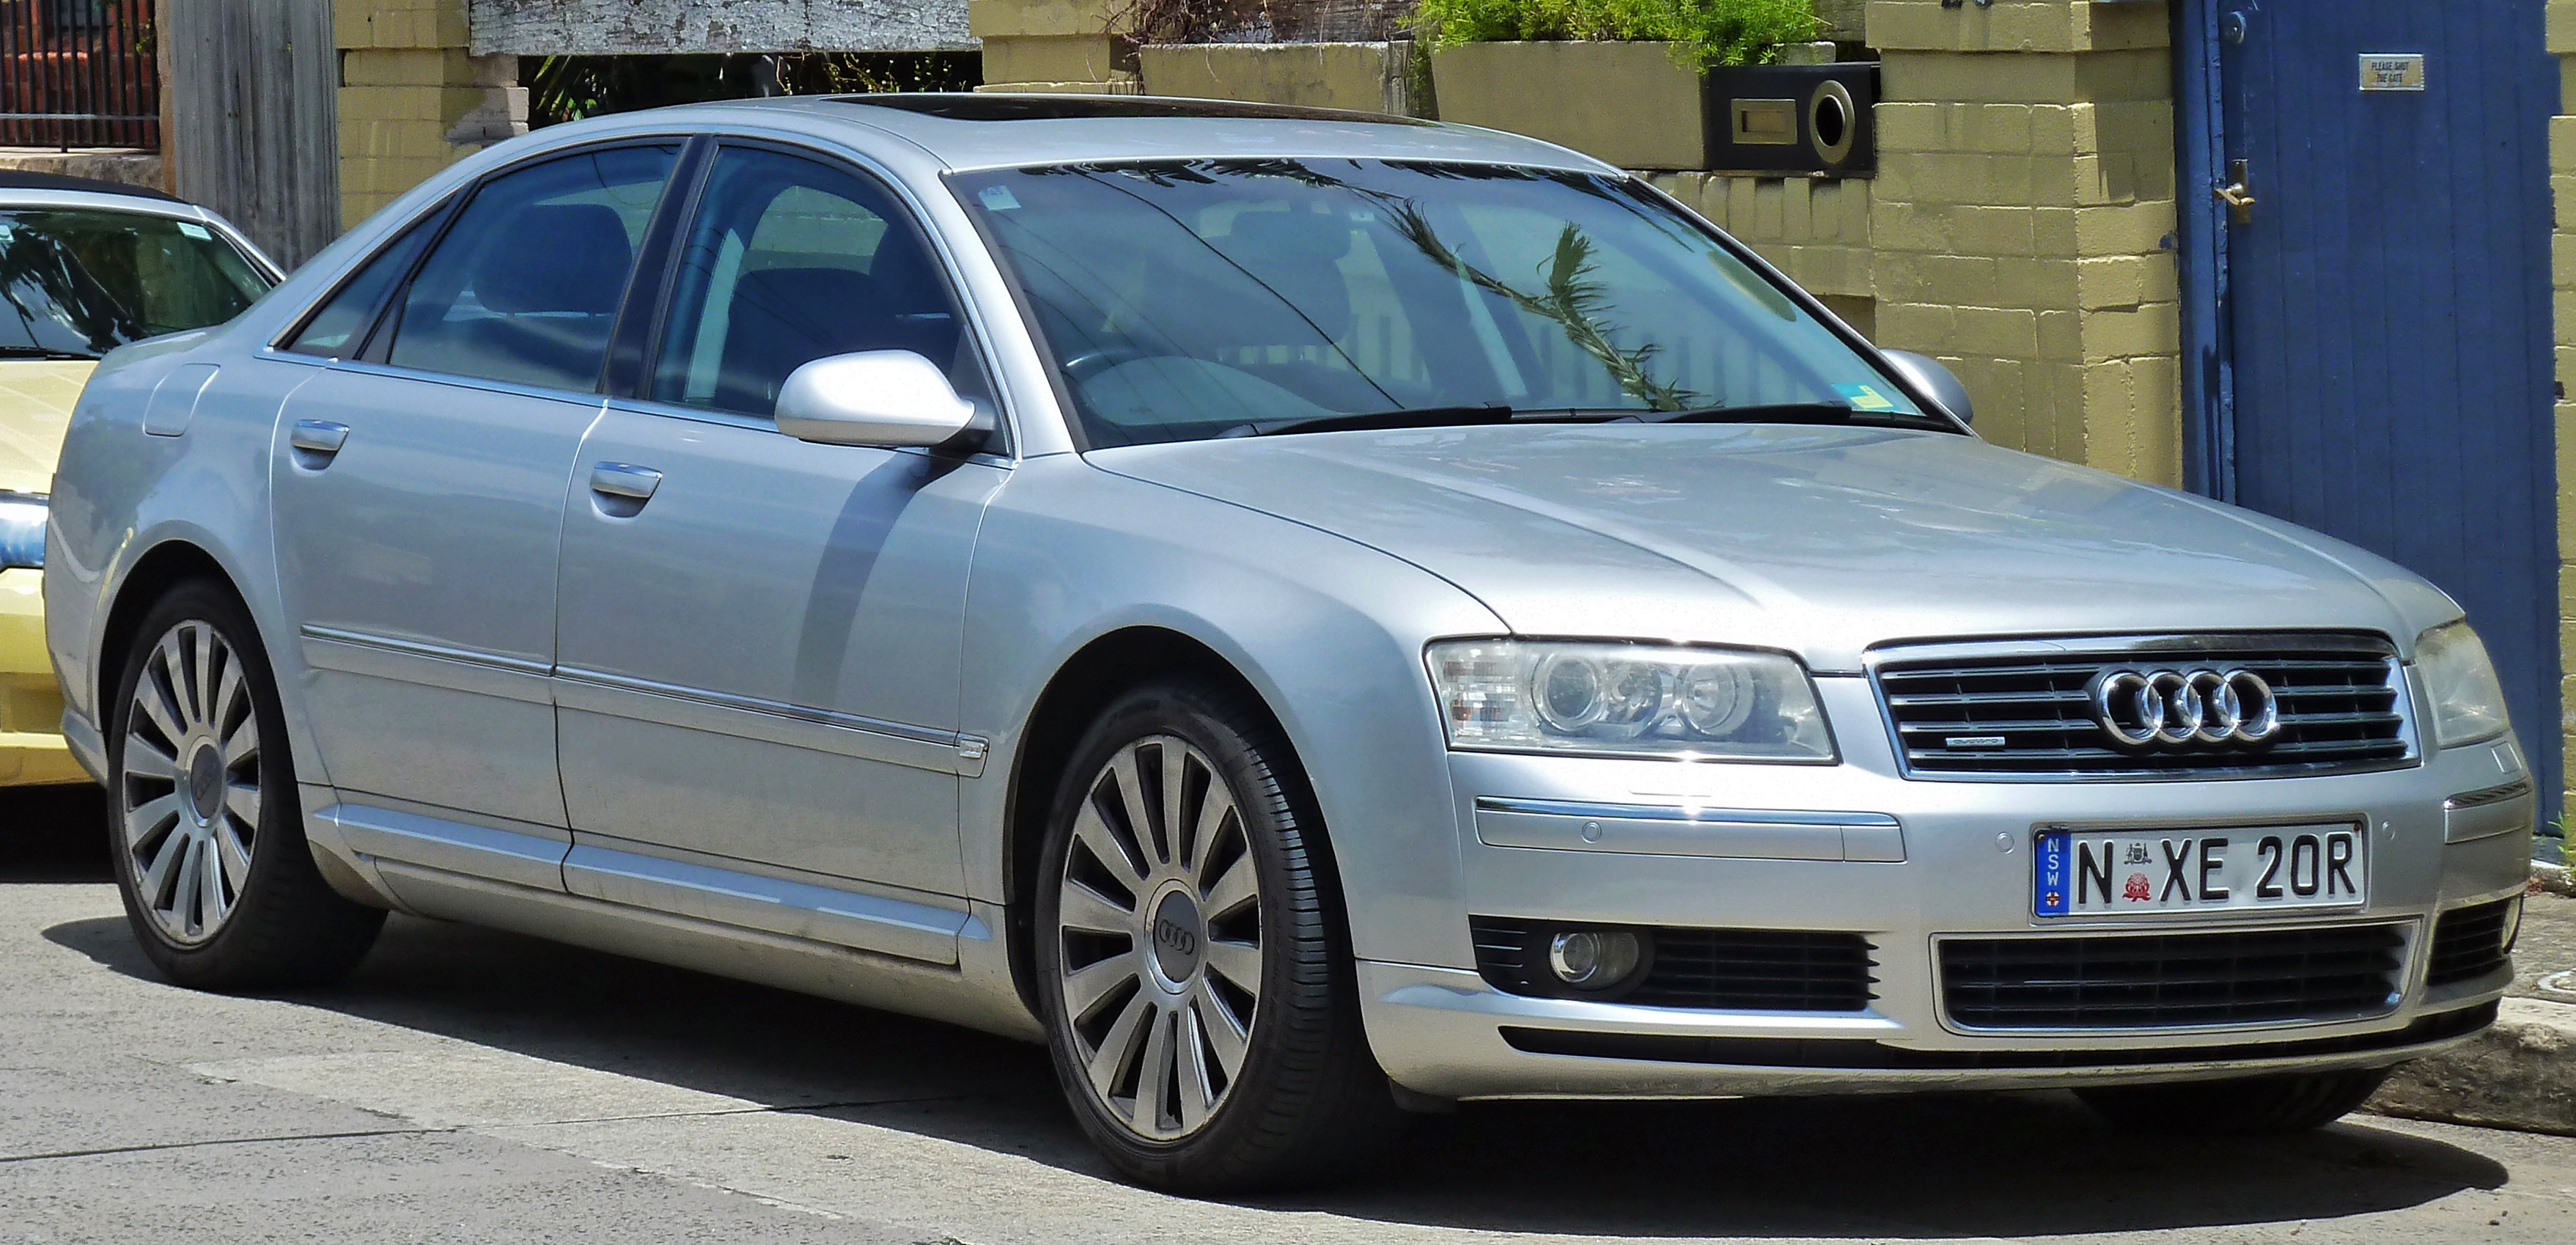 1998 Audi A8 Long D2 Pictures Information And Specs Auto Fuse Box Layout Of 5